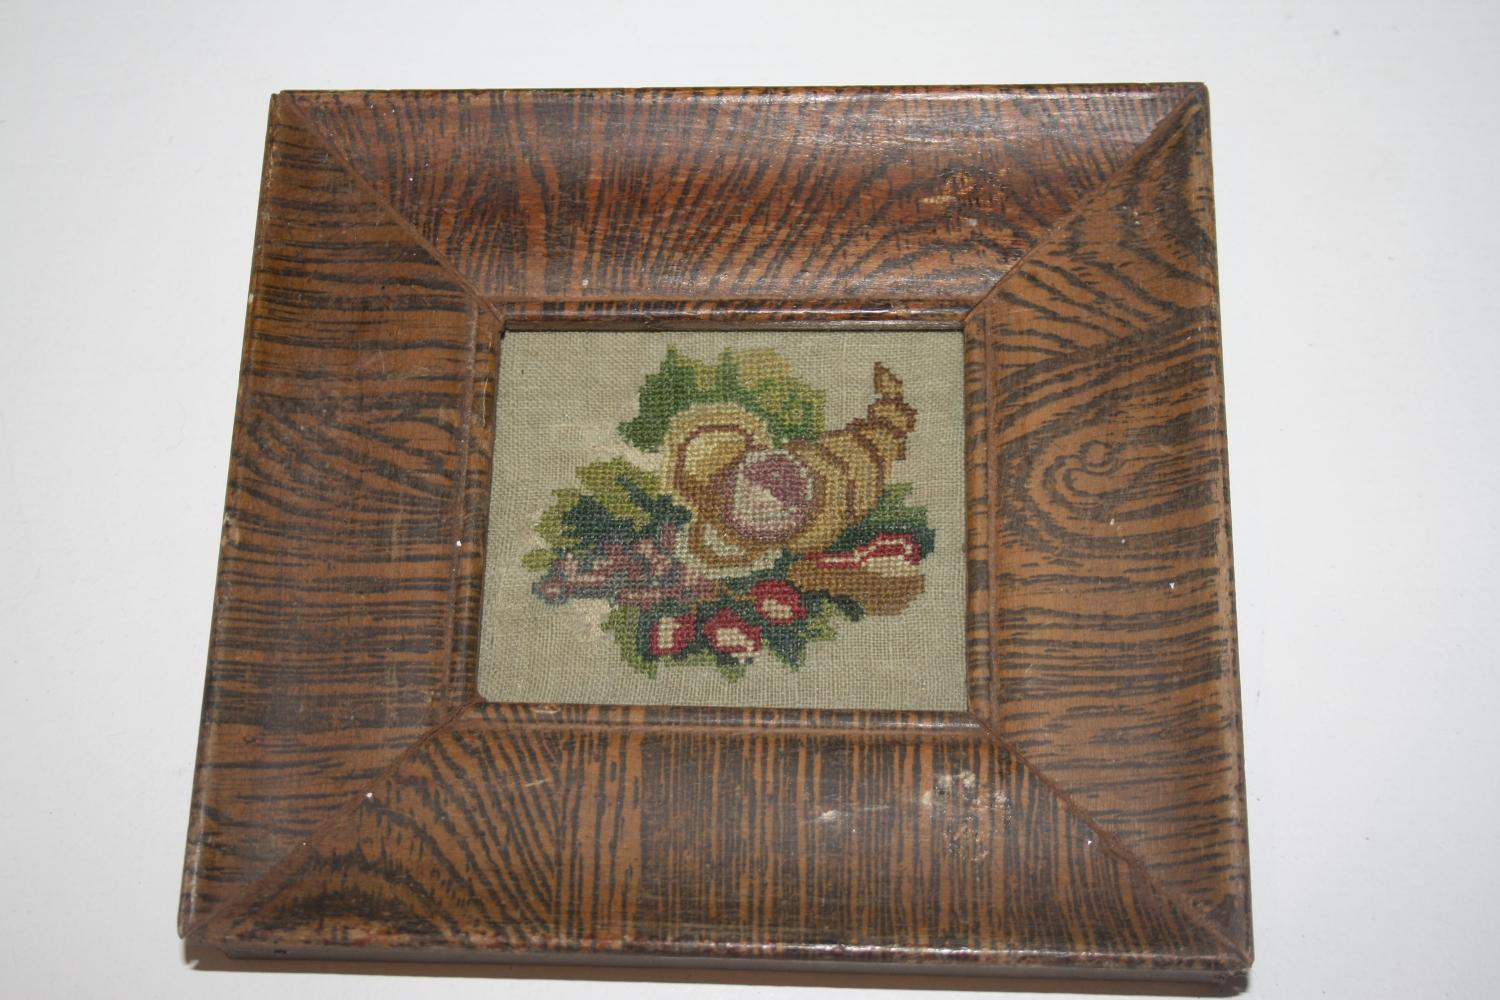 C19th Floral embroidery in frame